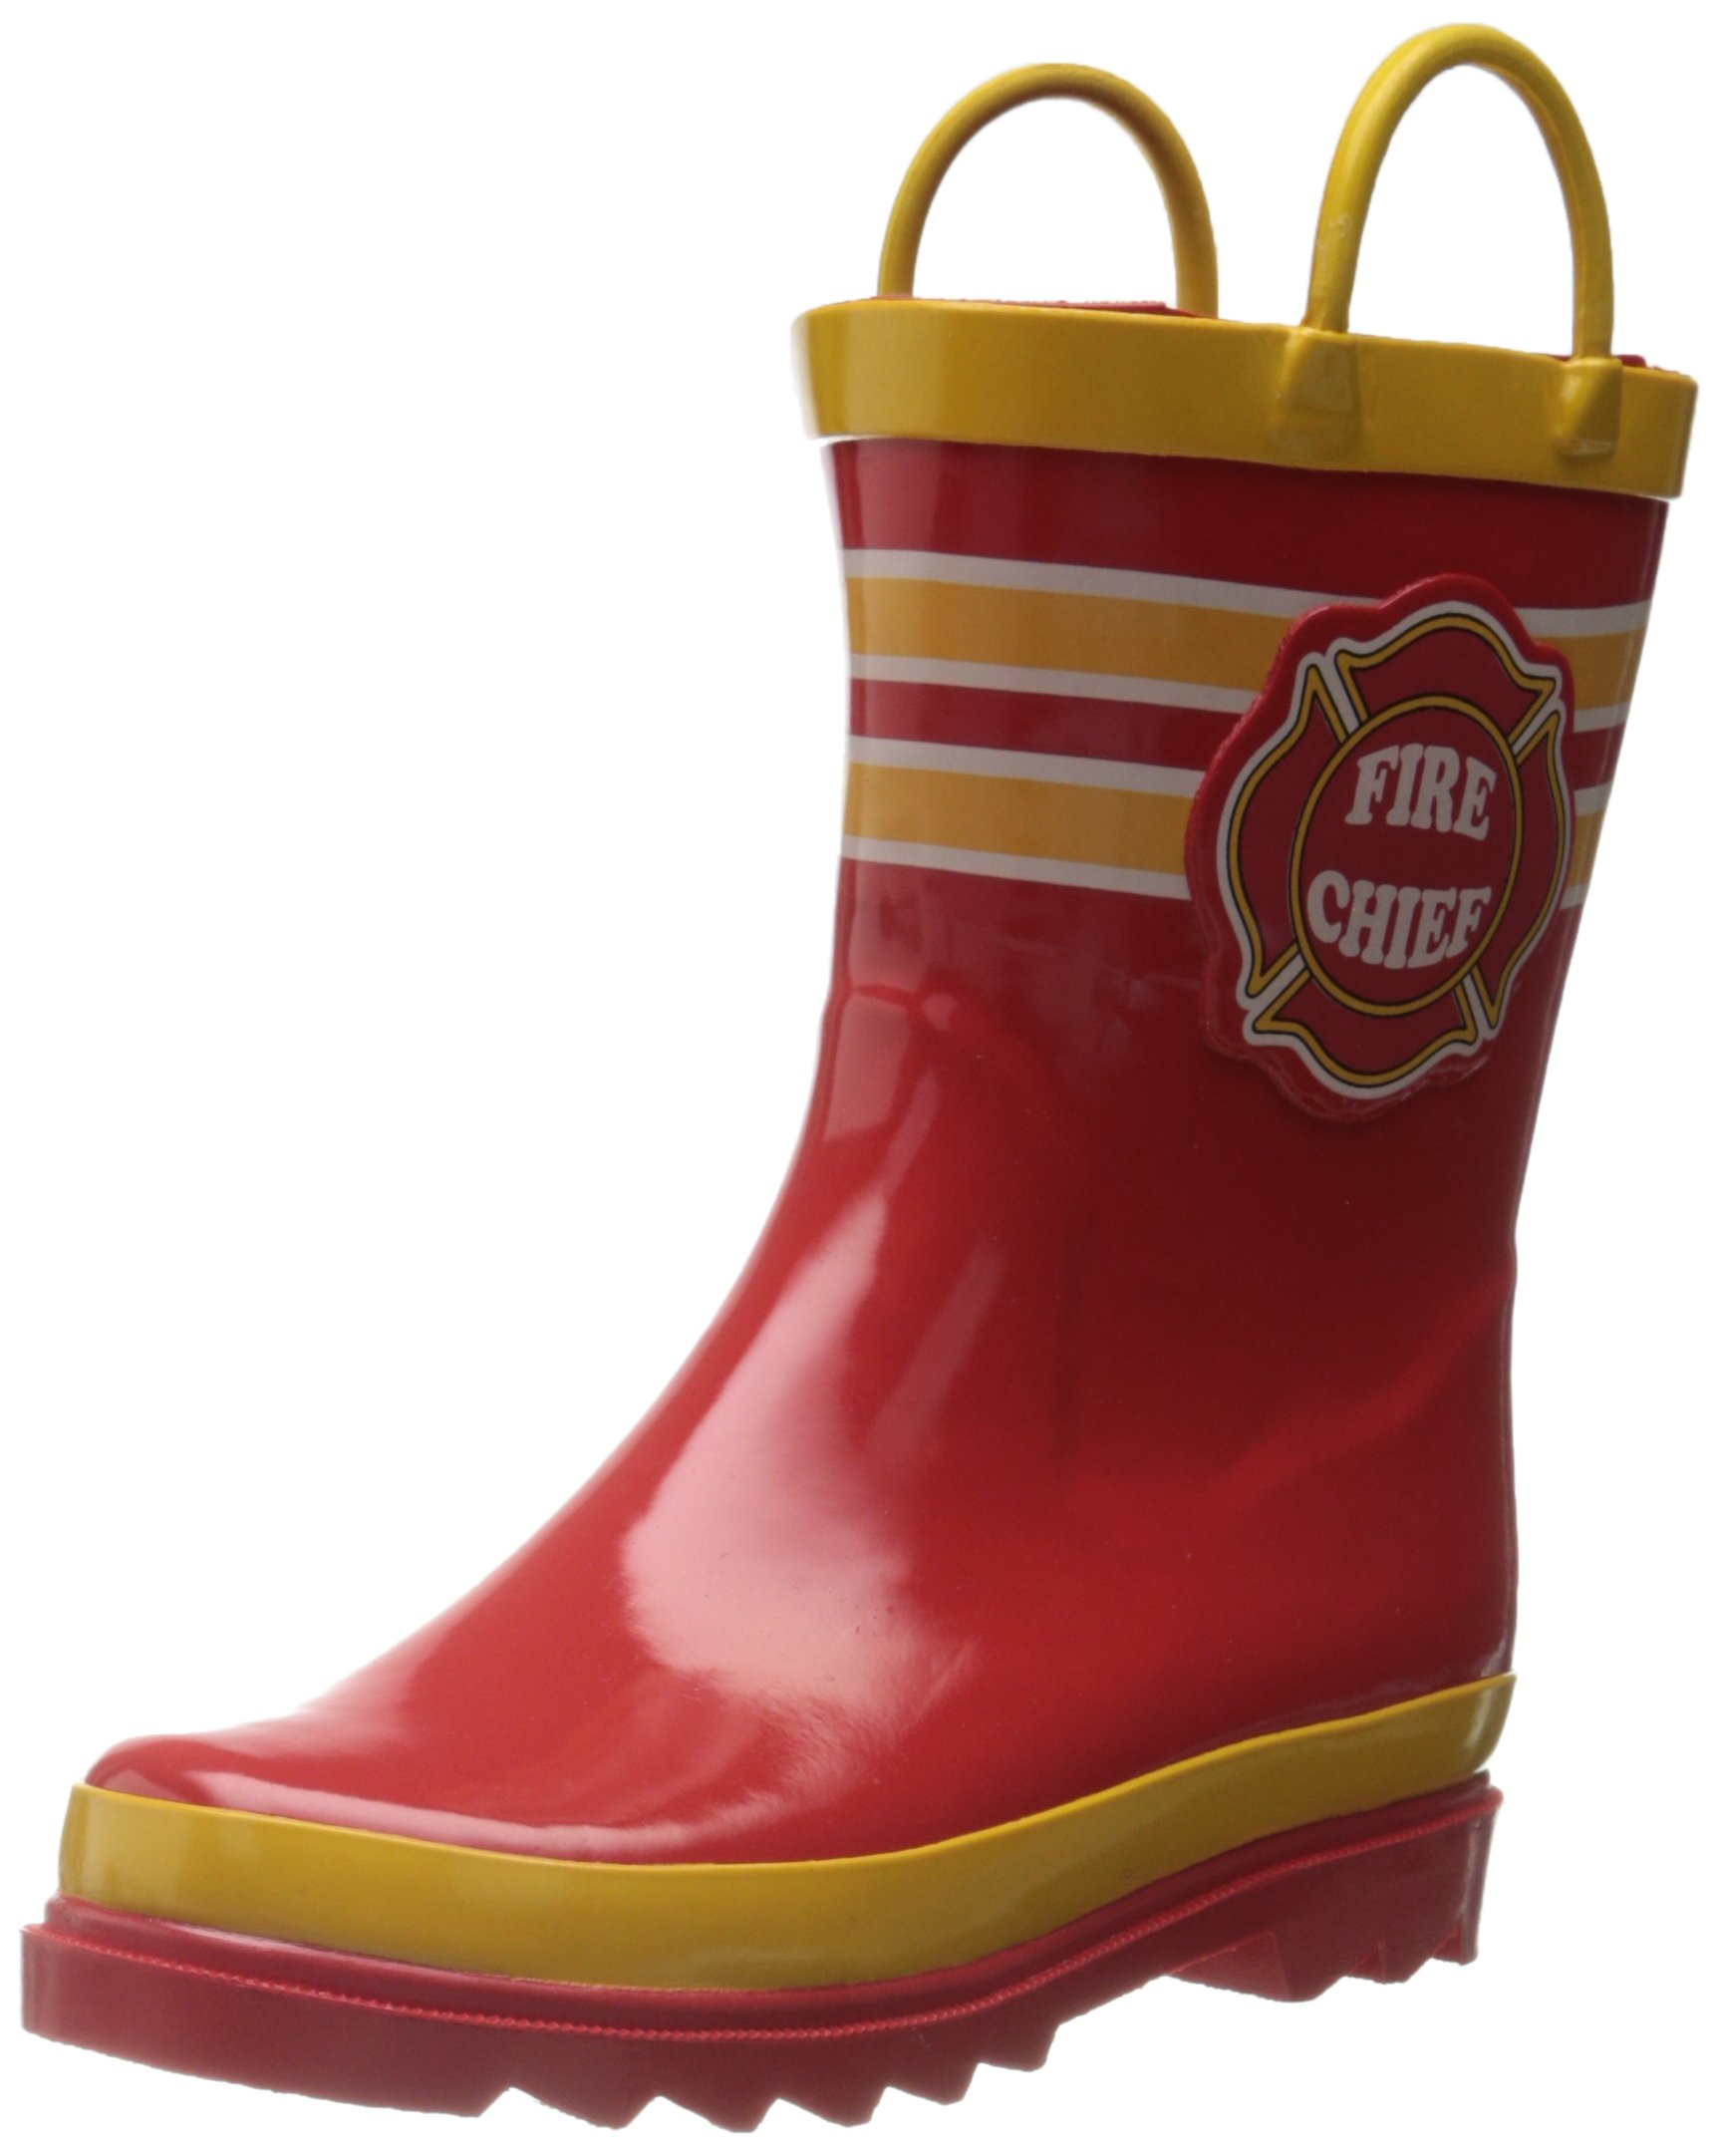 Little Boy's Fire Chief Rain Boots Sizes Infant, Toddler, Little Kids,